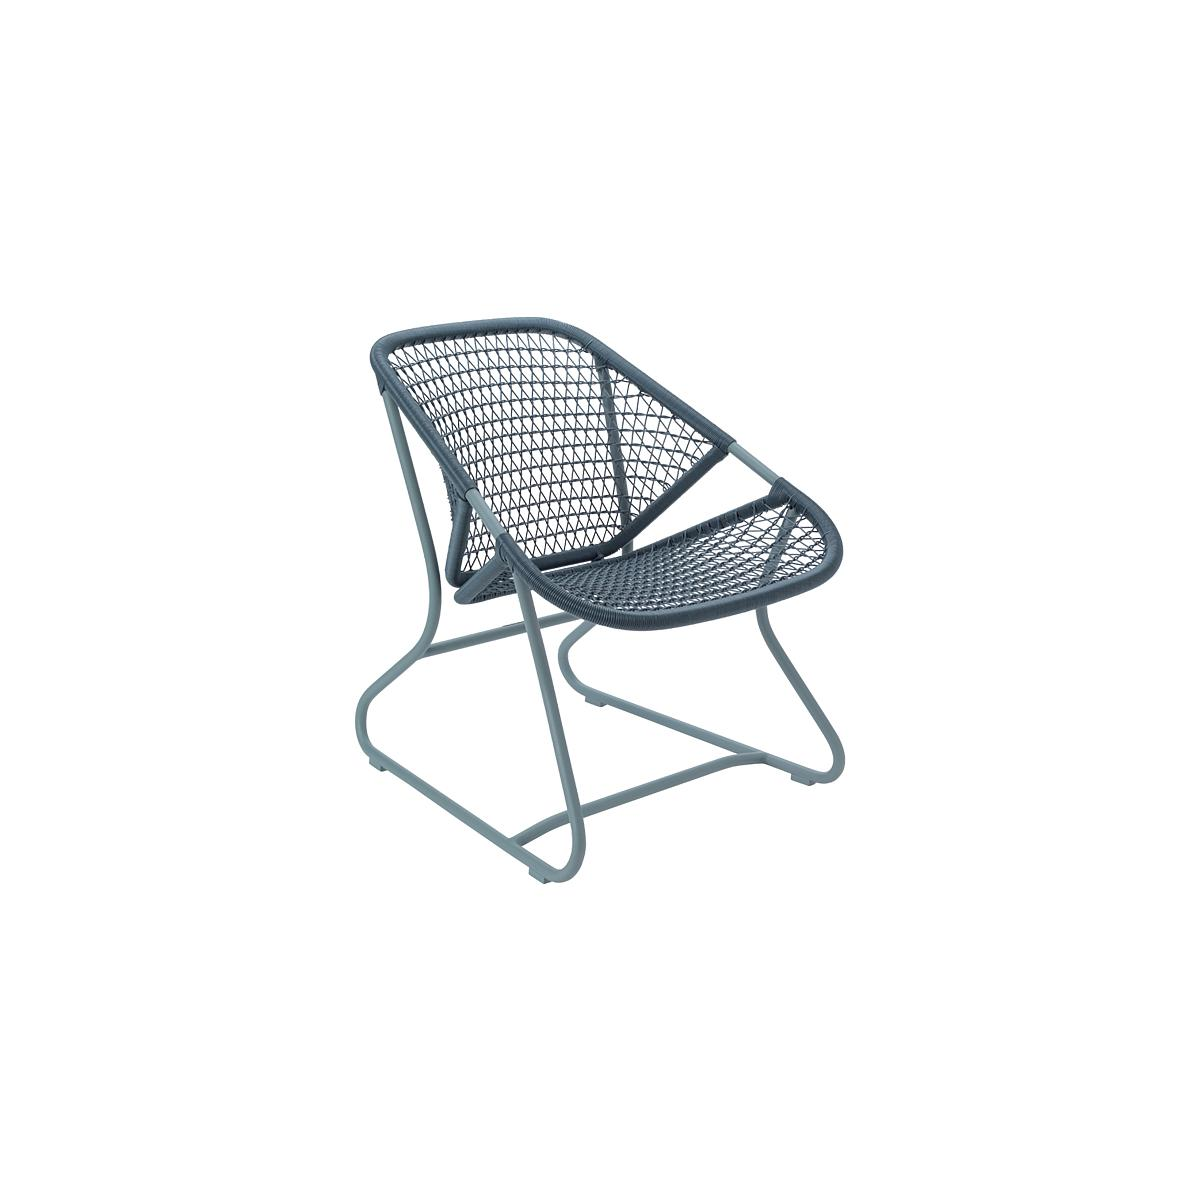 SIXTIES by Fermob Fauteuil structure Gris orage